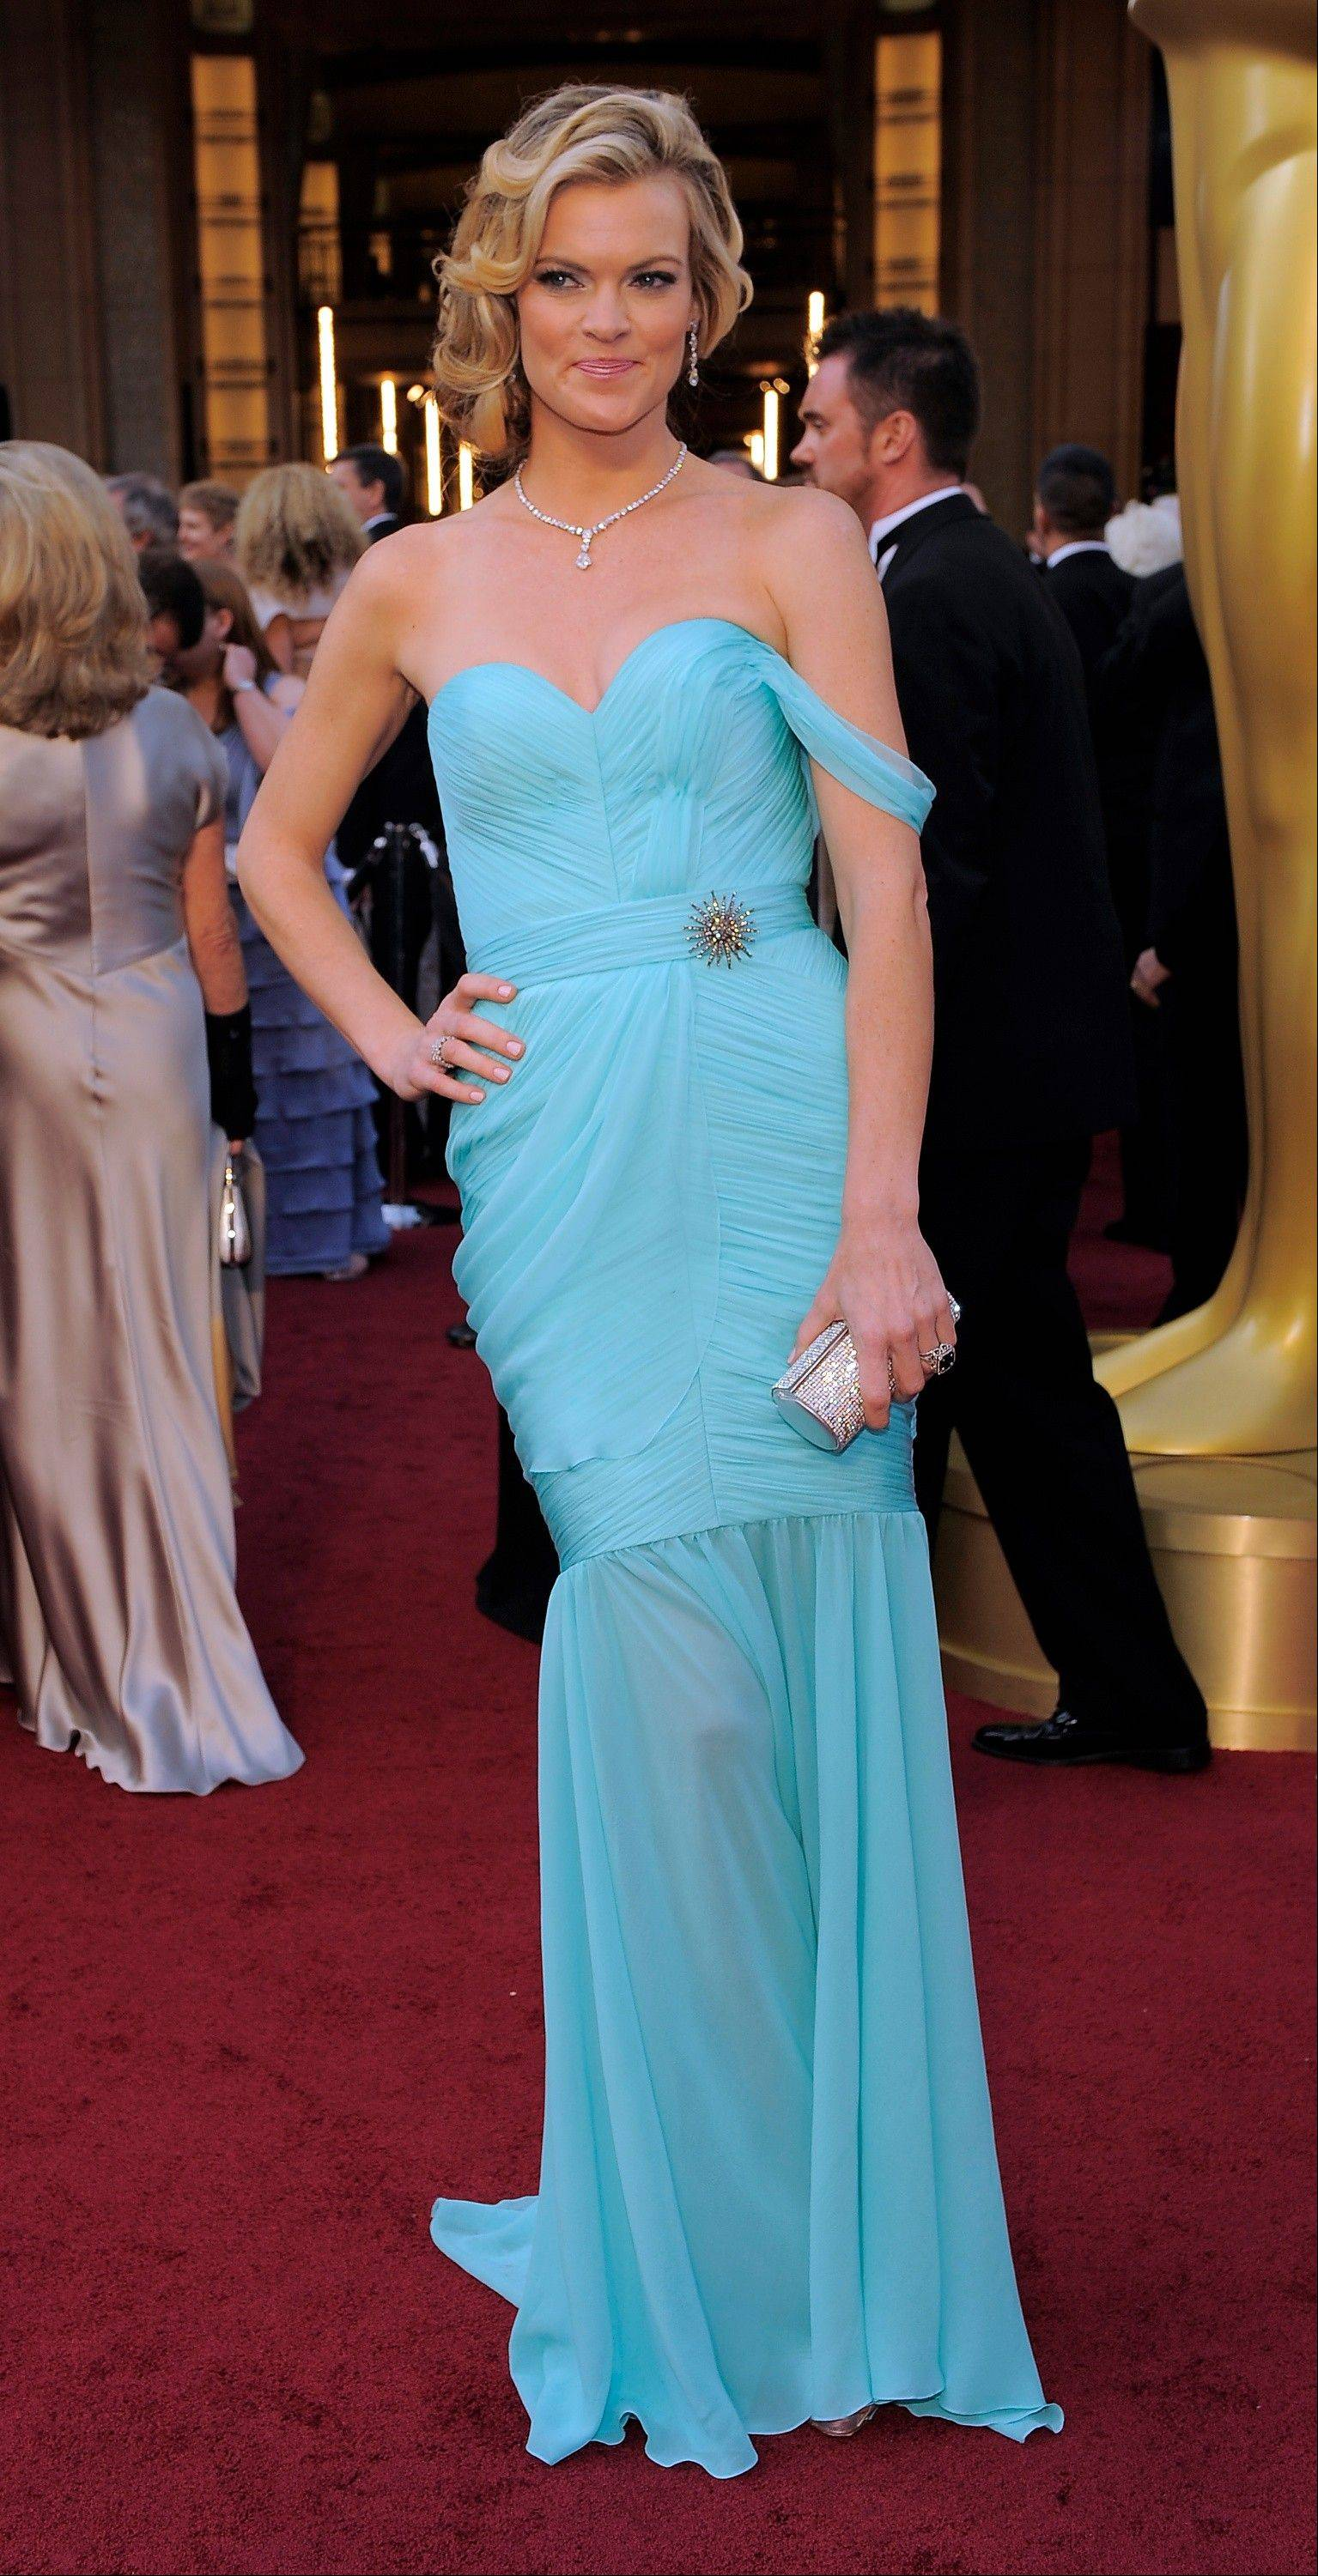 """The Artist"" actress Missi Pyle came to the Oscars in a Valentina Delfino gown."